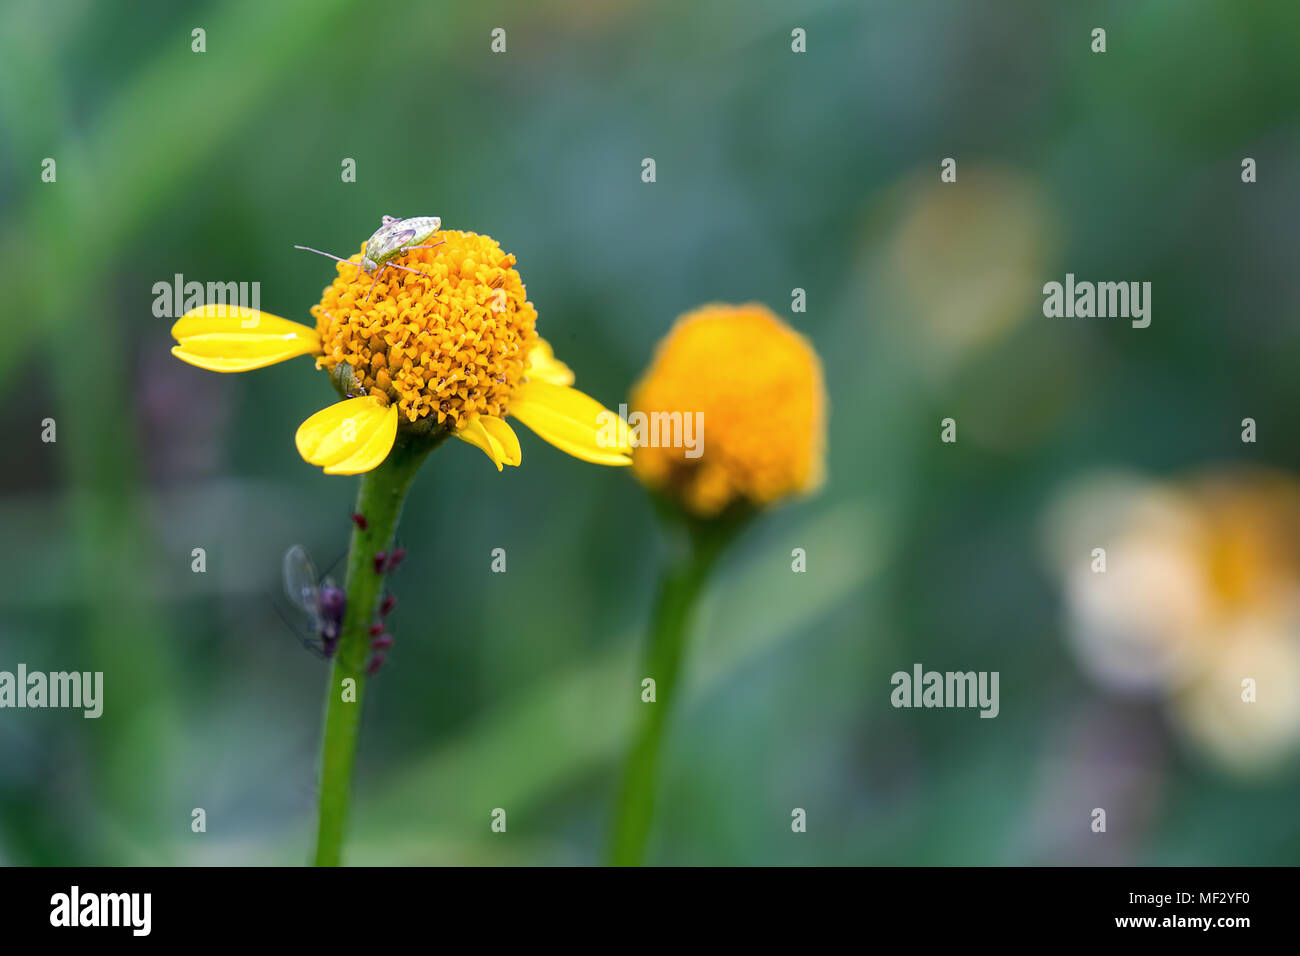 Macrophotography of a capsid bug on a tiny yellow flower. - Stock Image